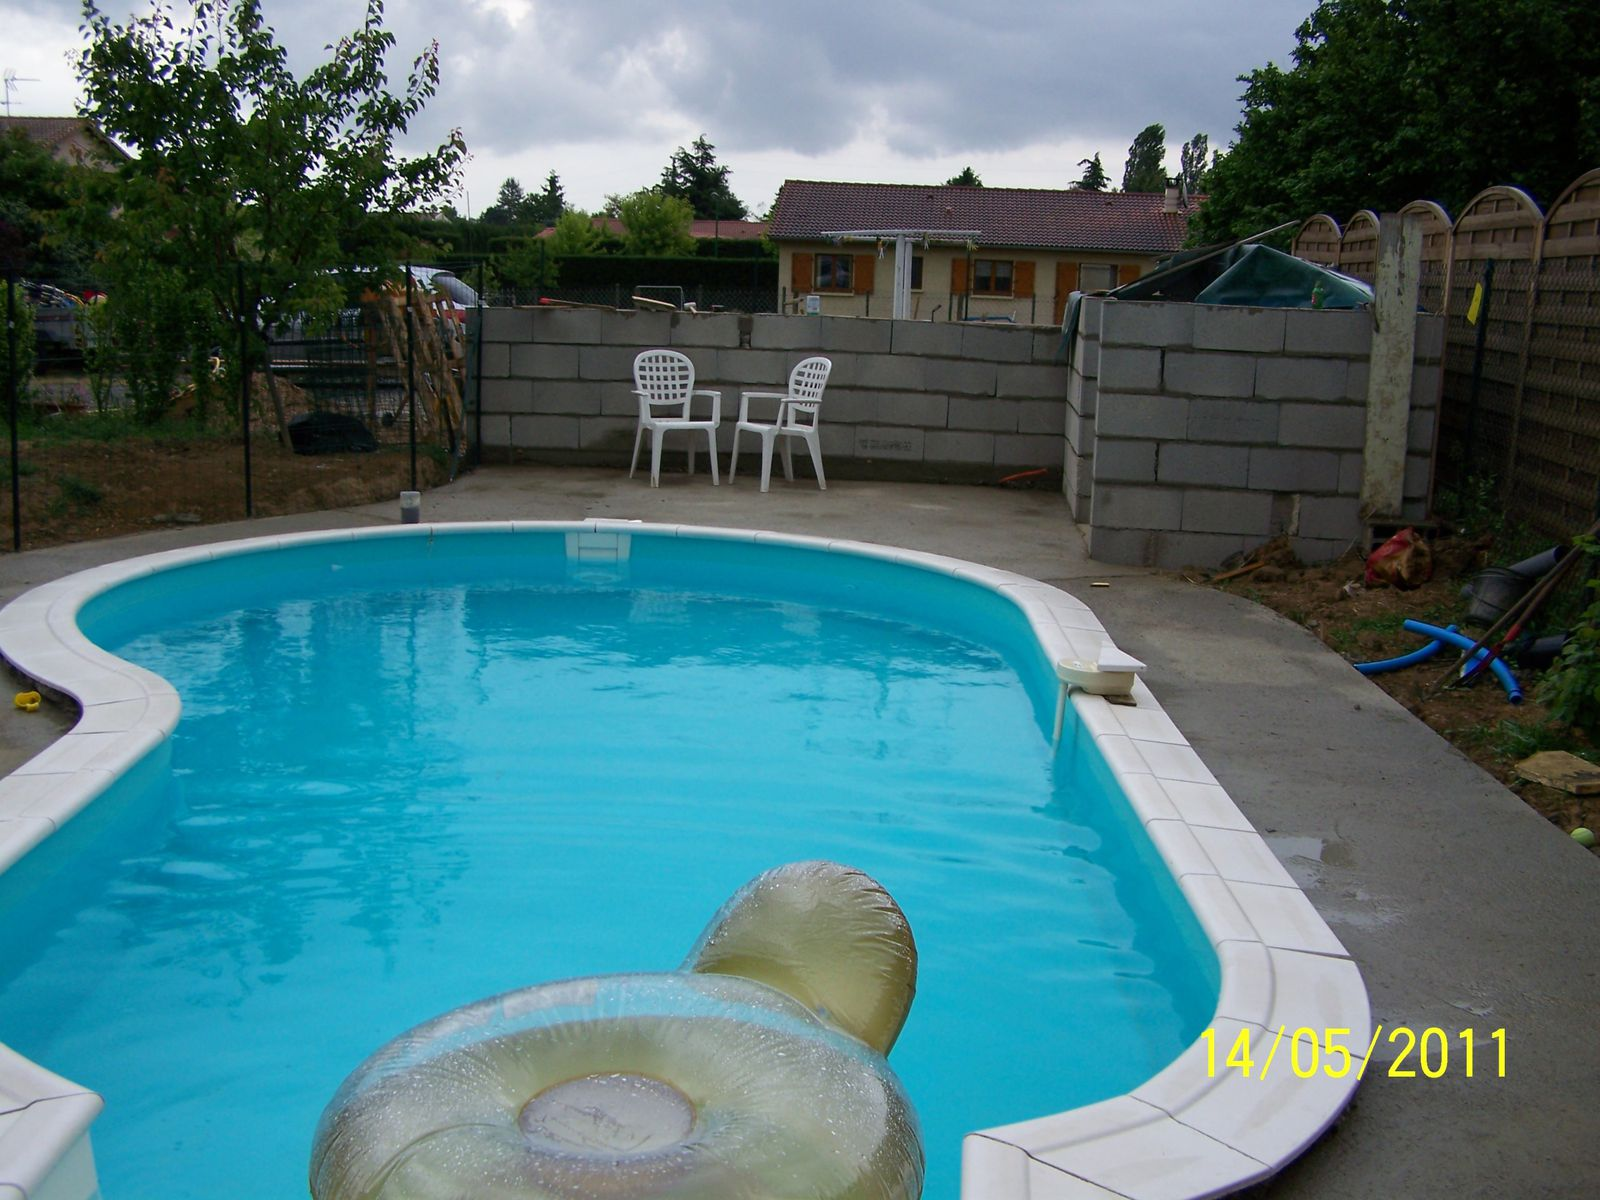 Suite de l abri cotier montage piscine waterair for Abri piscine waterair